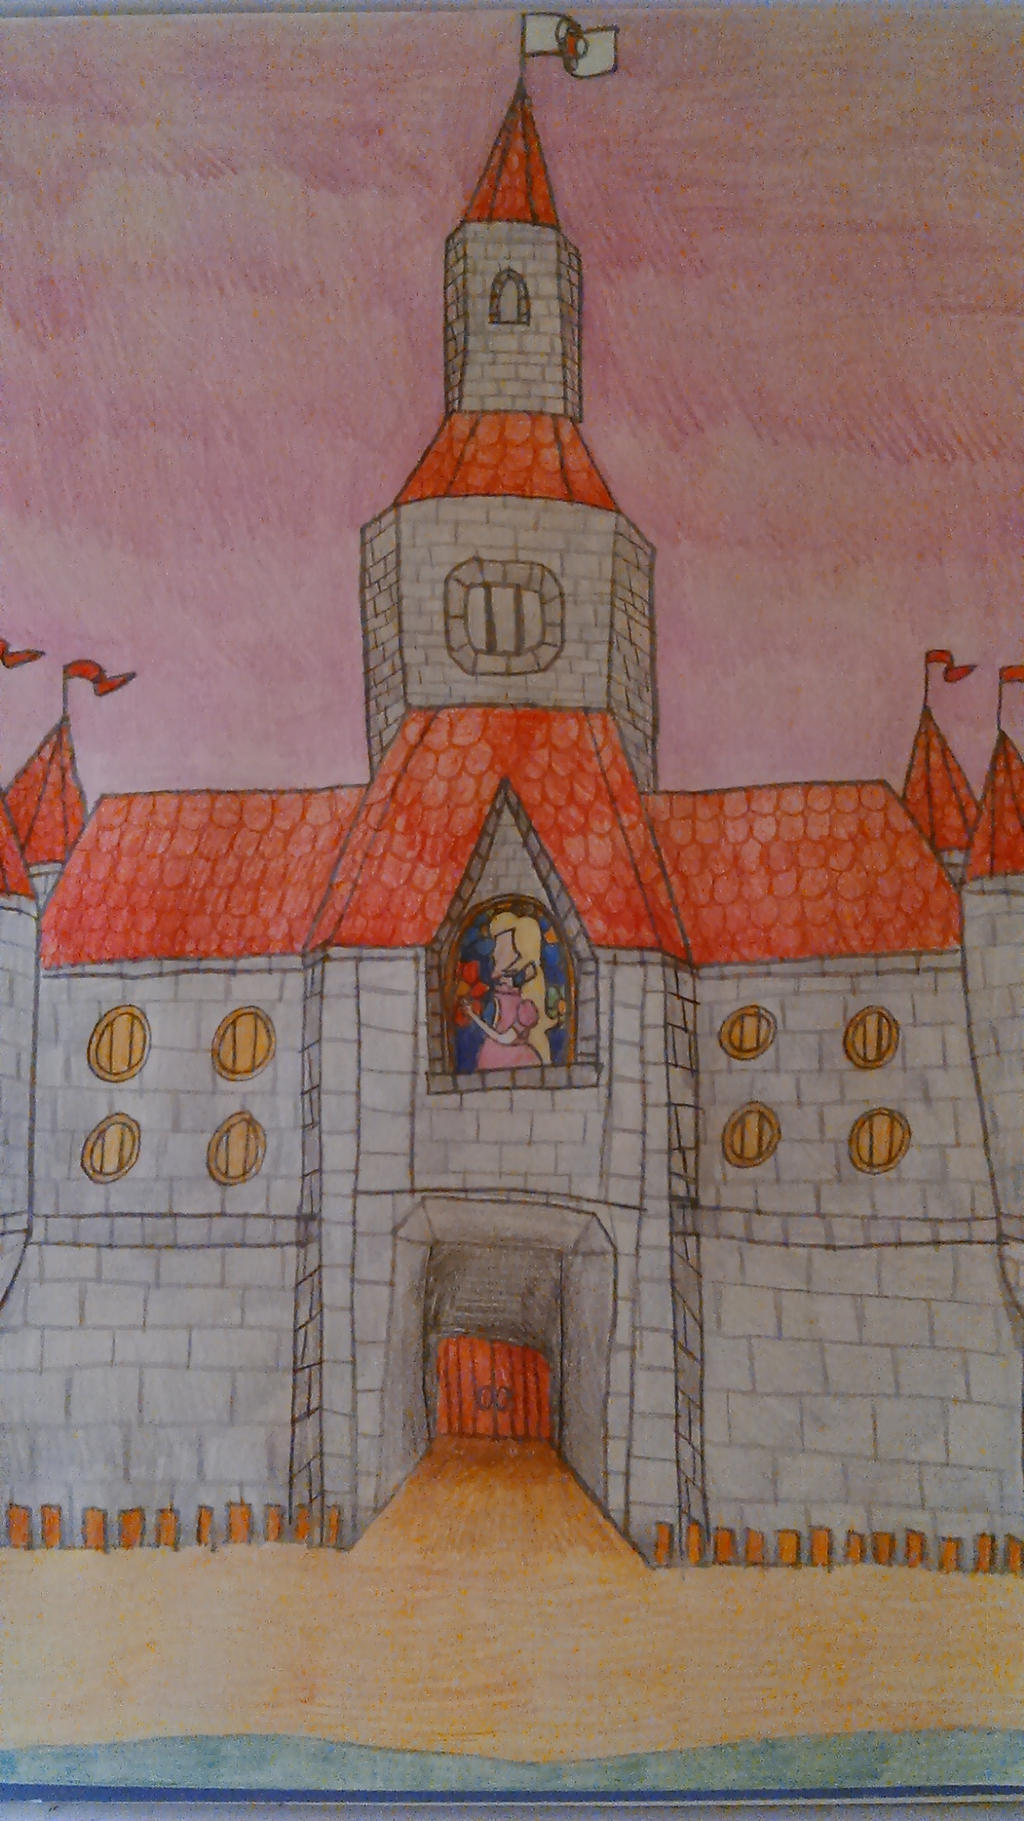 Princess Peach S Castle By Mrdeviantarter On Deviantart